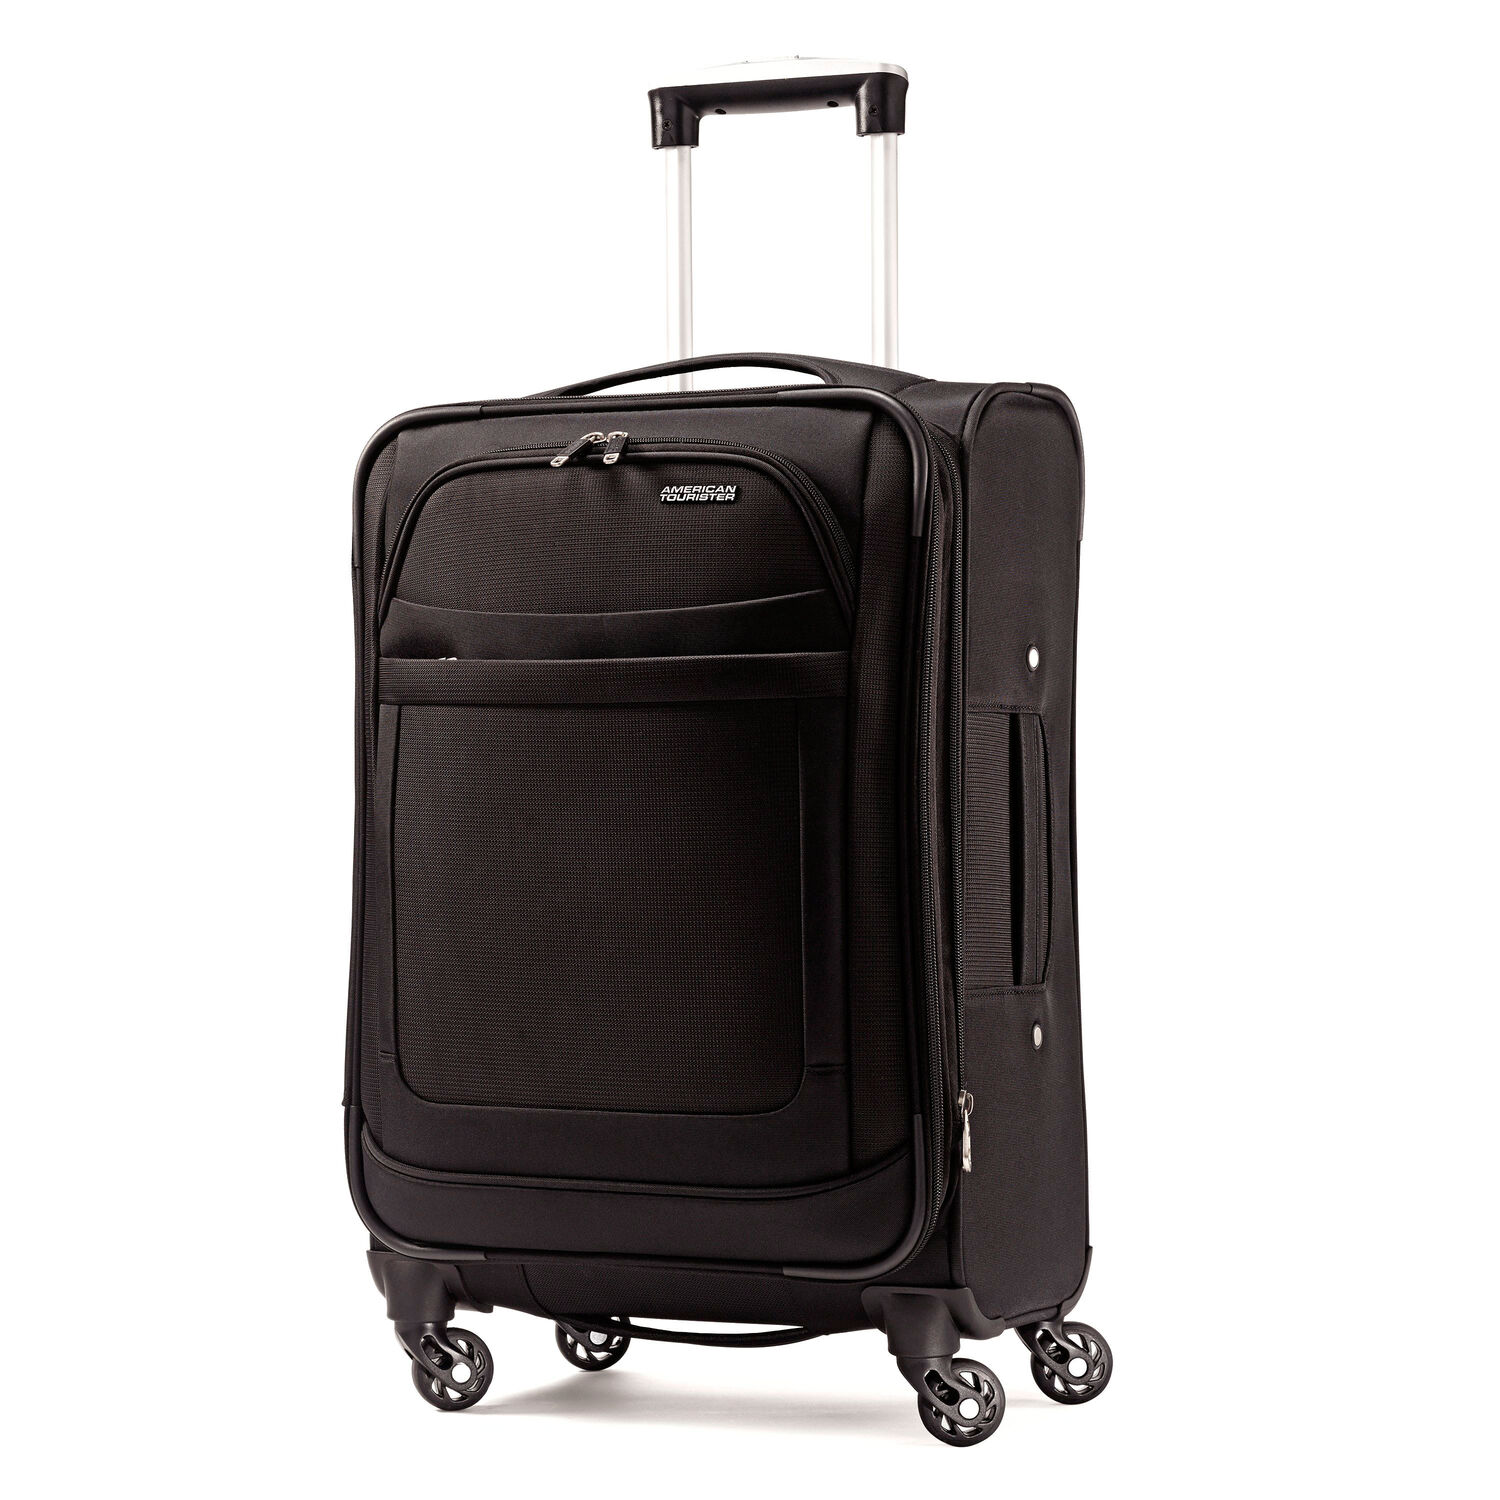 American Tourister Ilite Max 21 Quot Spinner